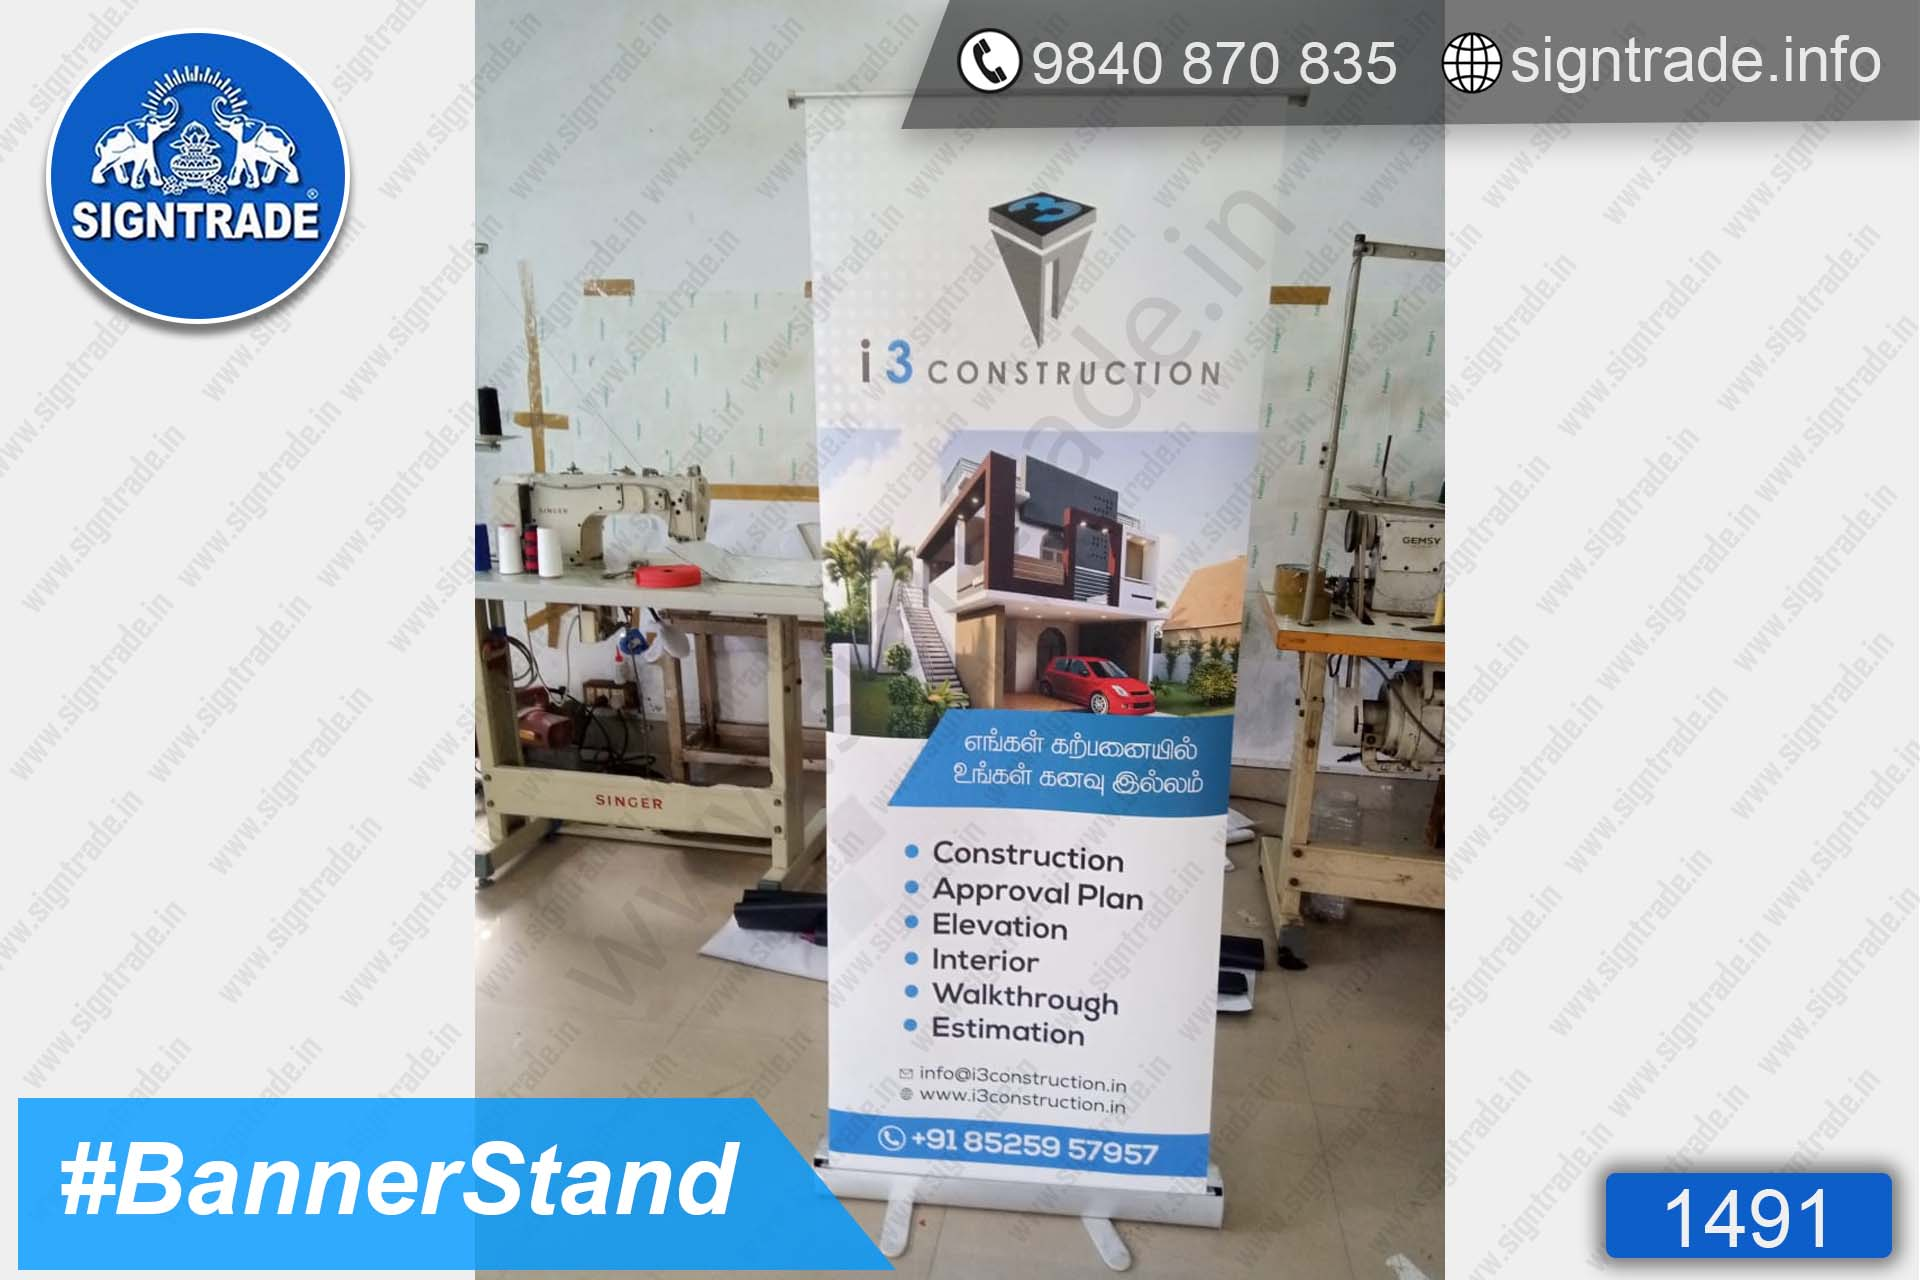 1491, i3 Constructions, Mayiladuthurai - SIGNTRADE - Digital Printing Services - Roll Up Banner Stand Manufacturer in Chennai